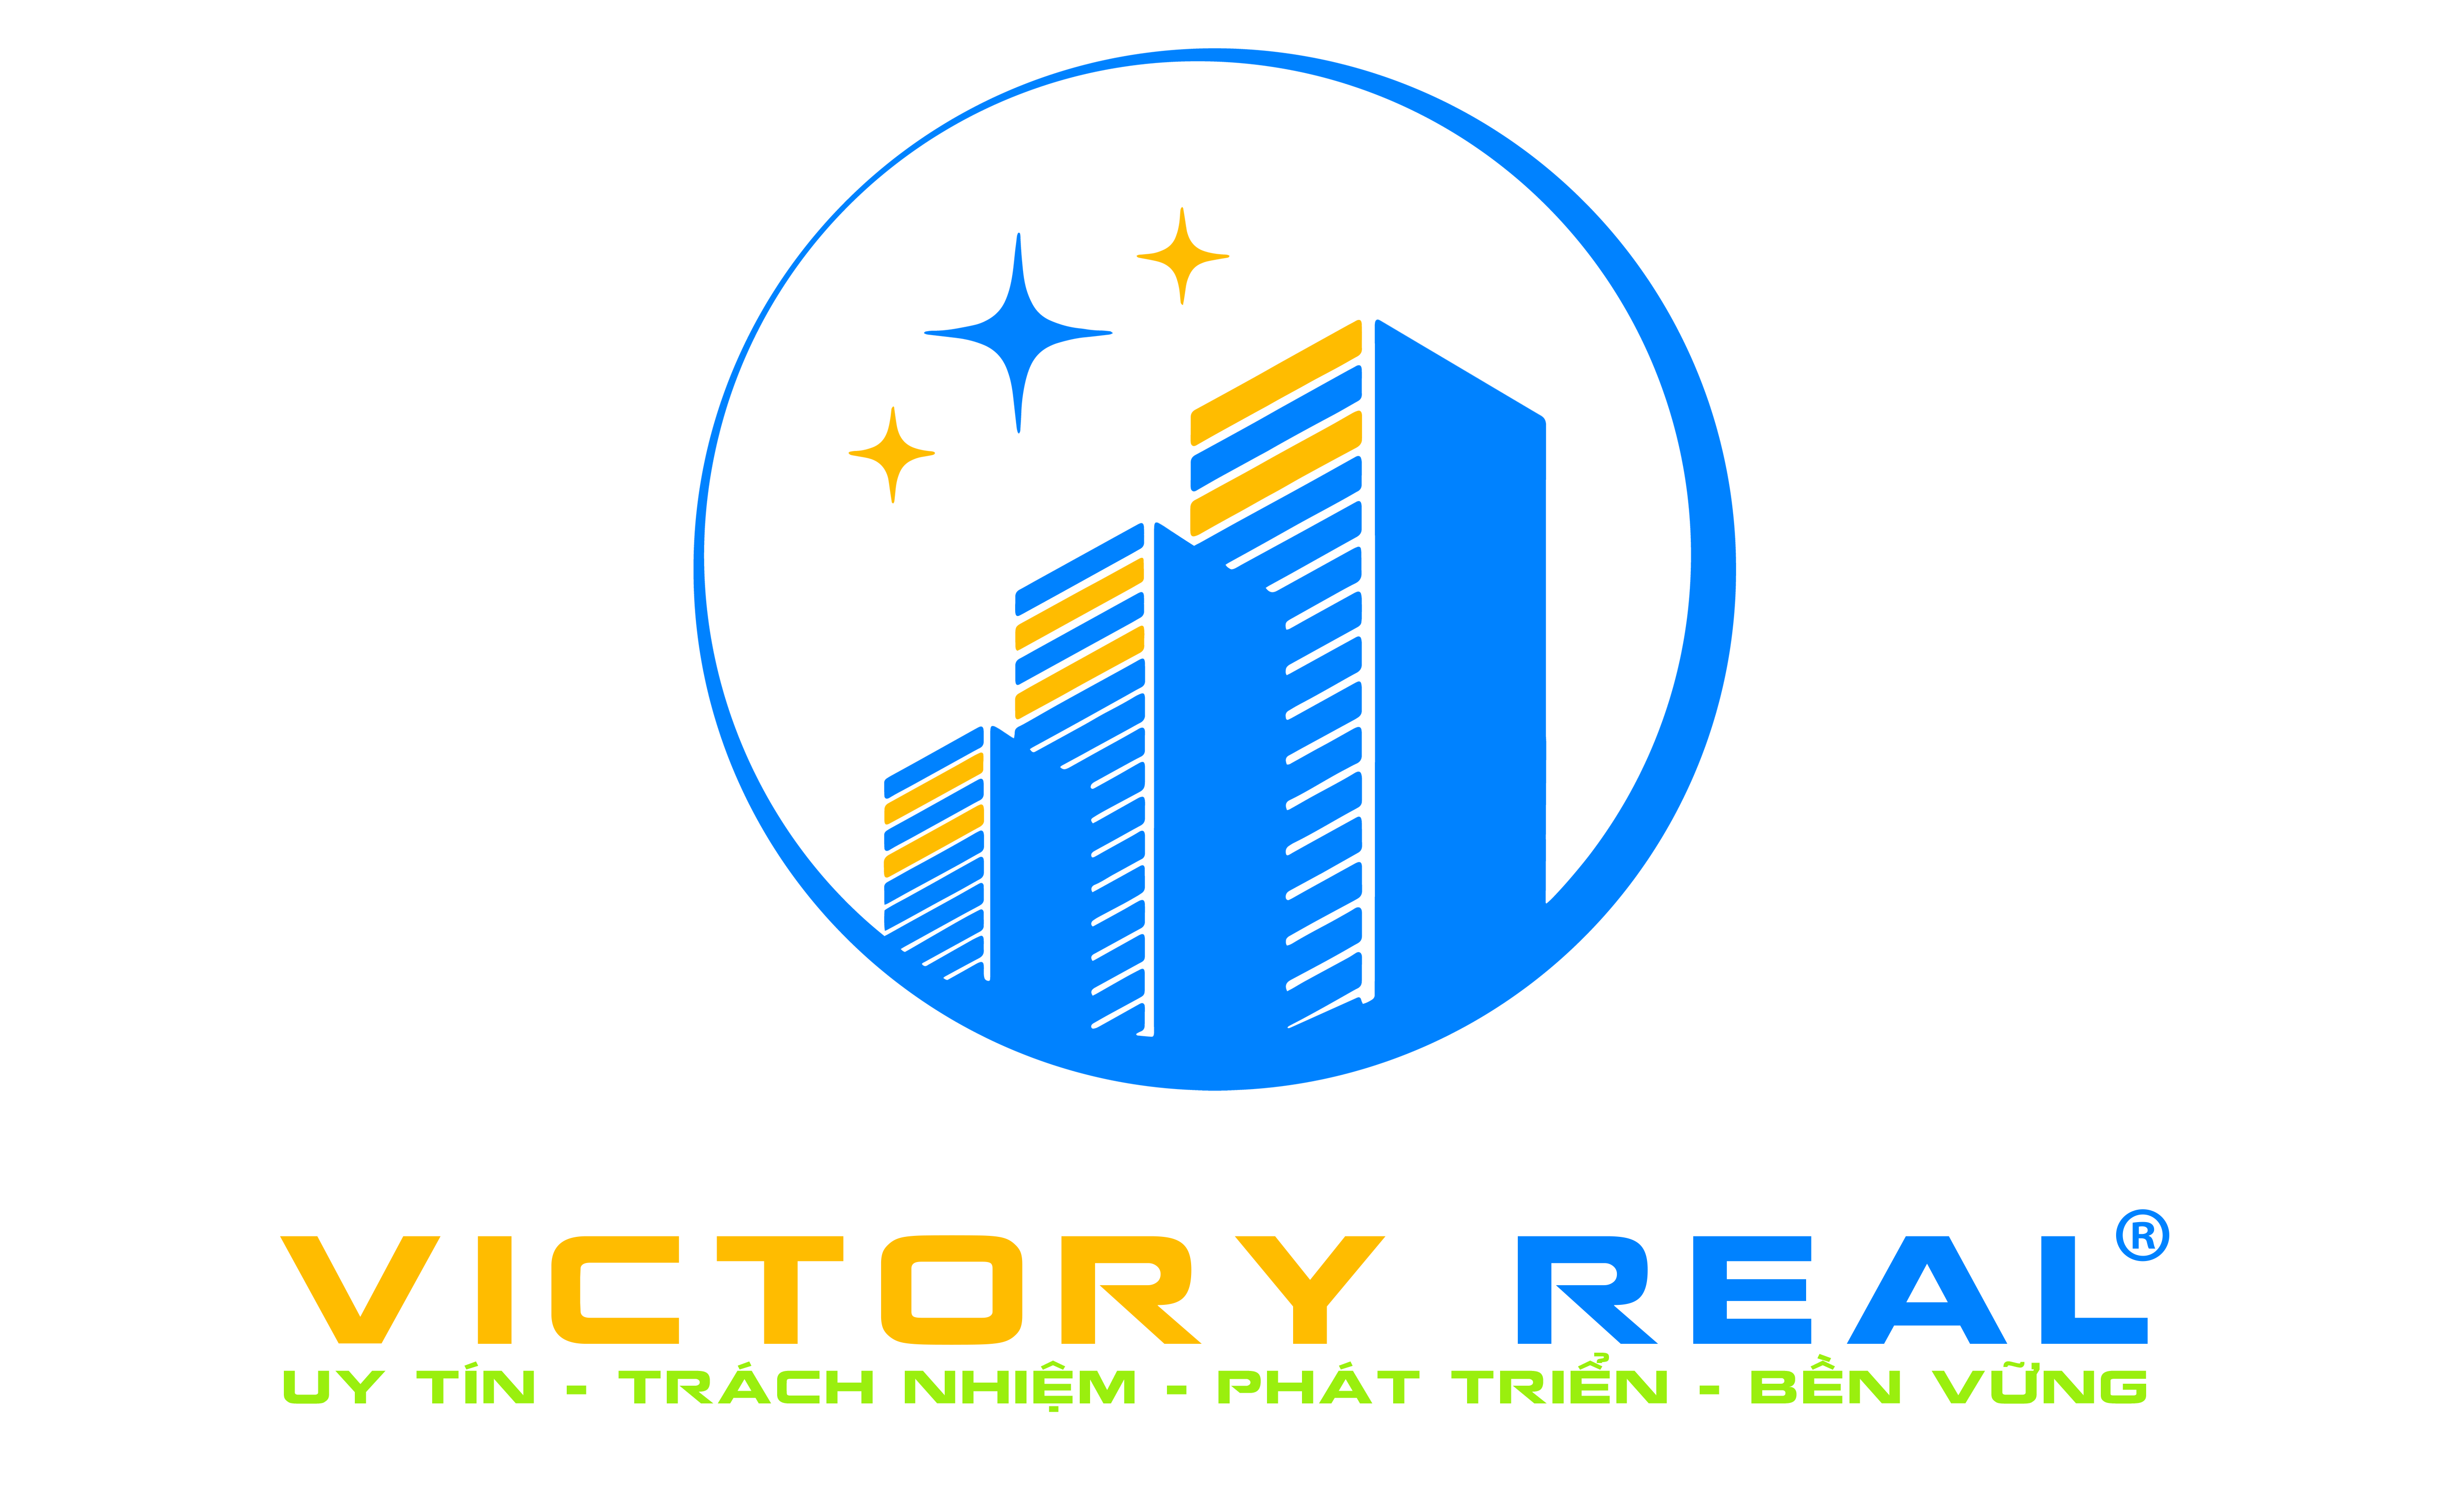 Victory REAL